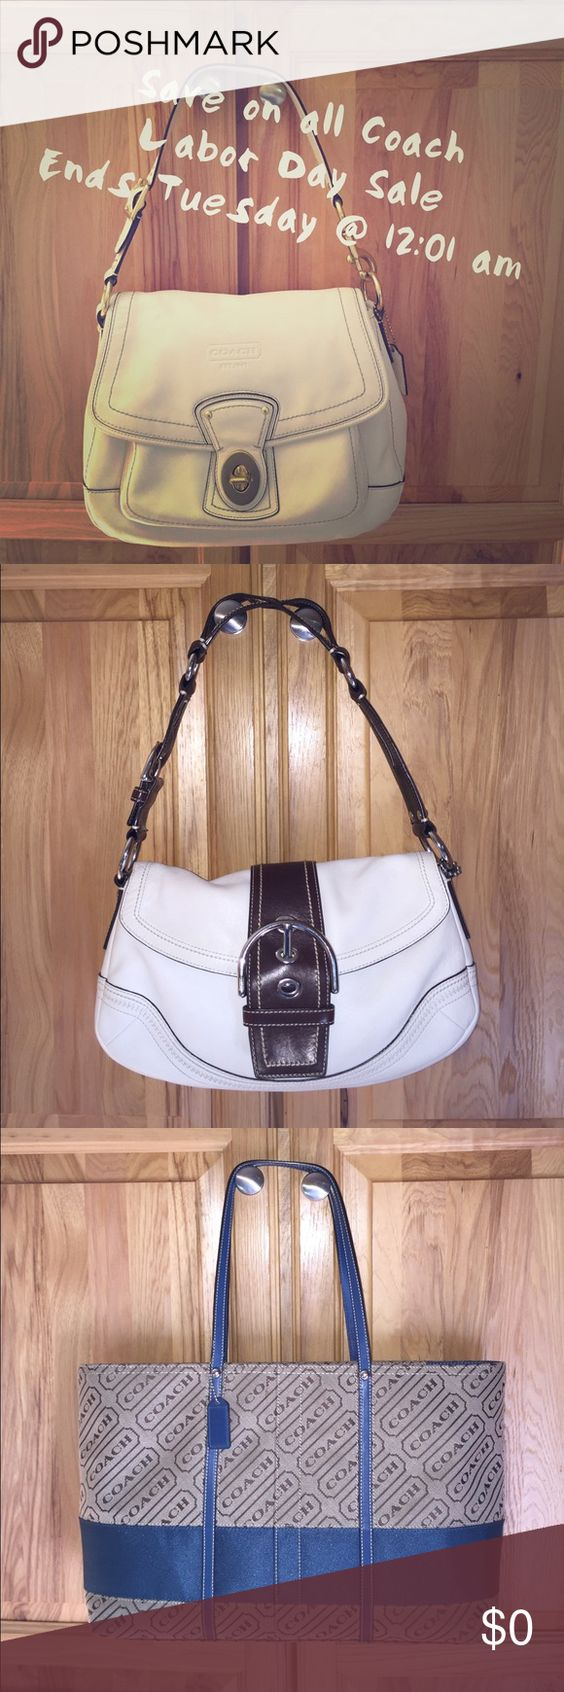 Coach on Sale All Coach bags on sale!! Coach Bags Shoulder Bags